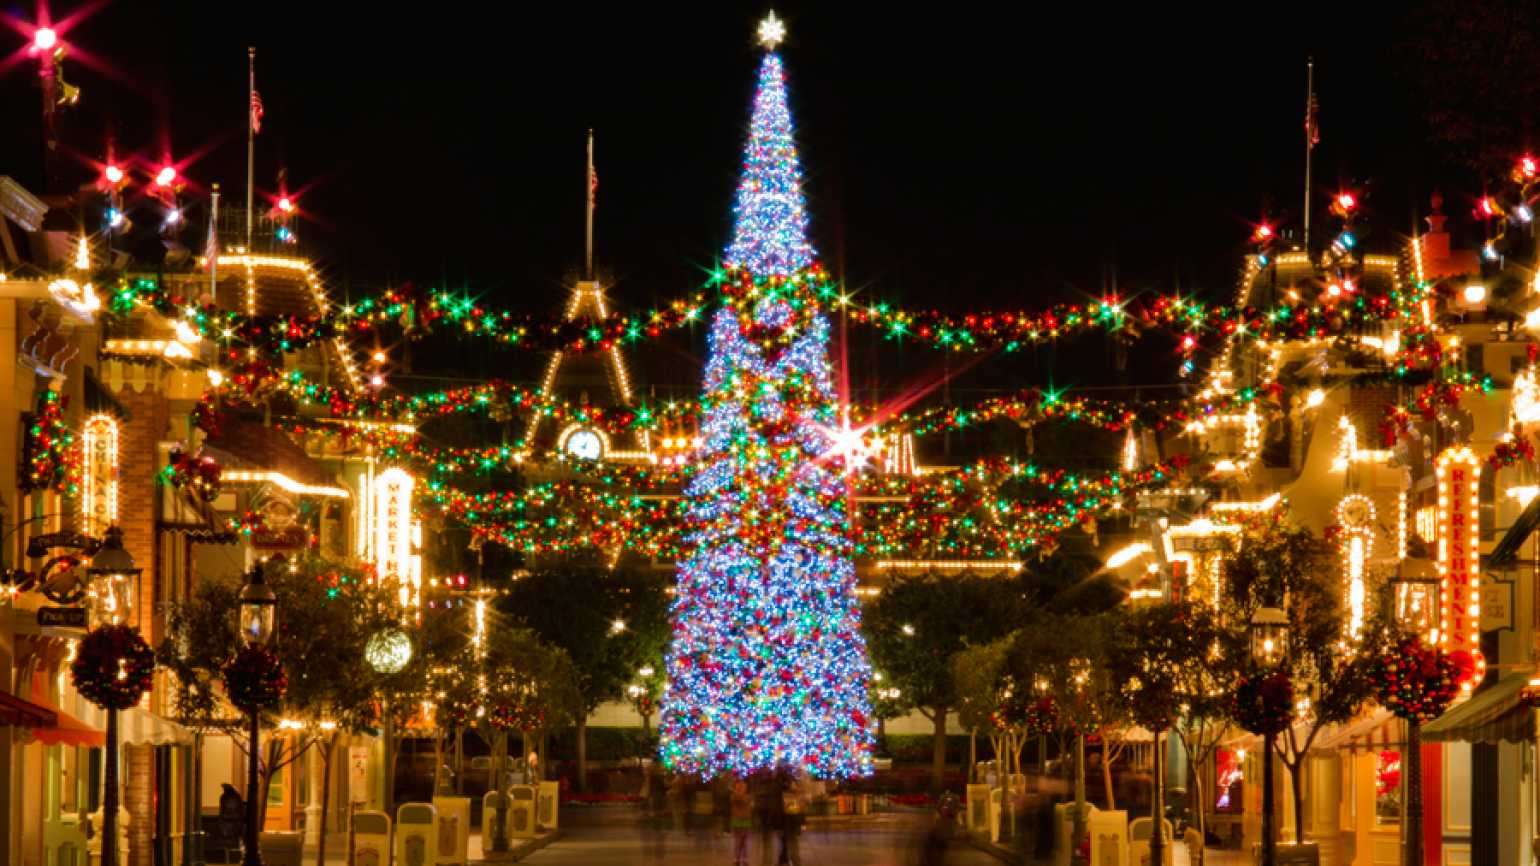 Guideposts: This tree at Disneyland is just one of 11 in our collection of Christmas trees across America